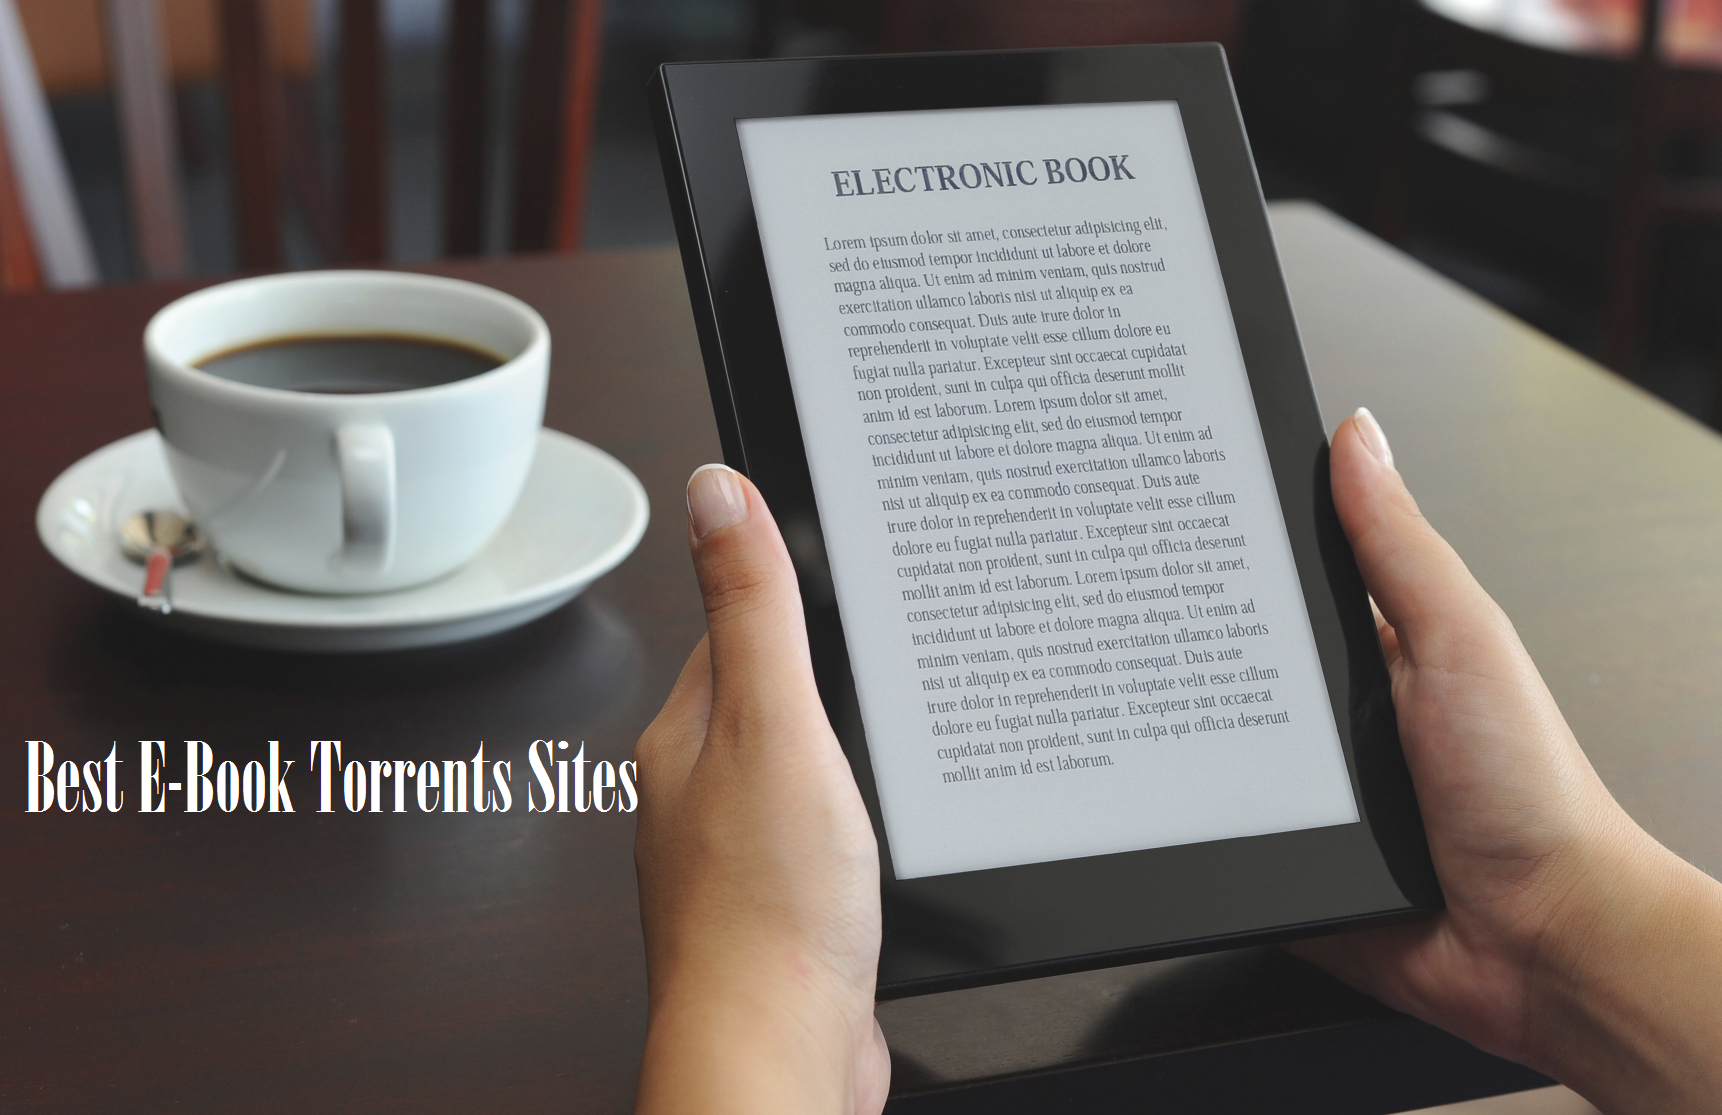 the best 17 e book torrents sites 2018 for book torrenting mobile